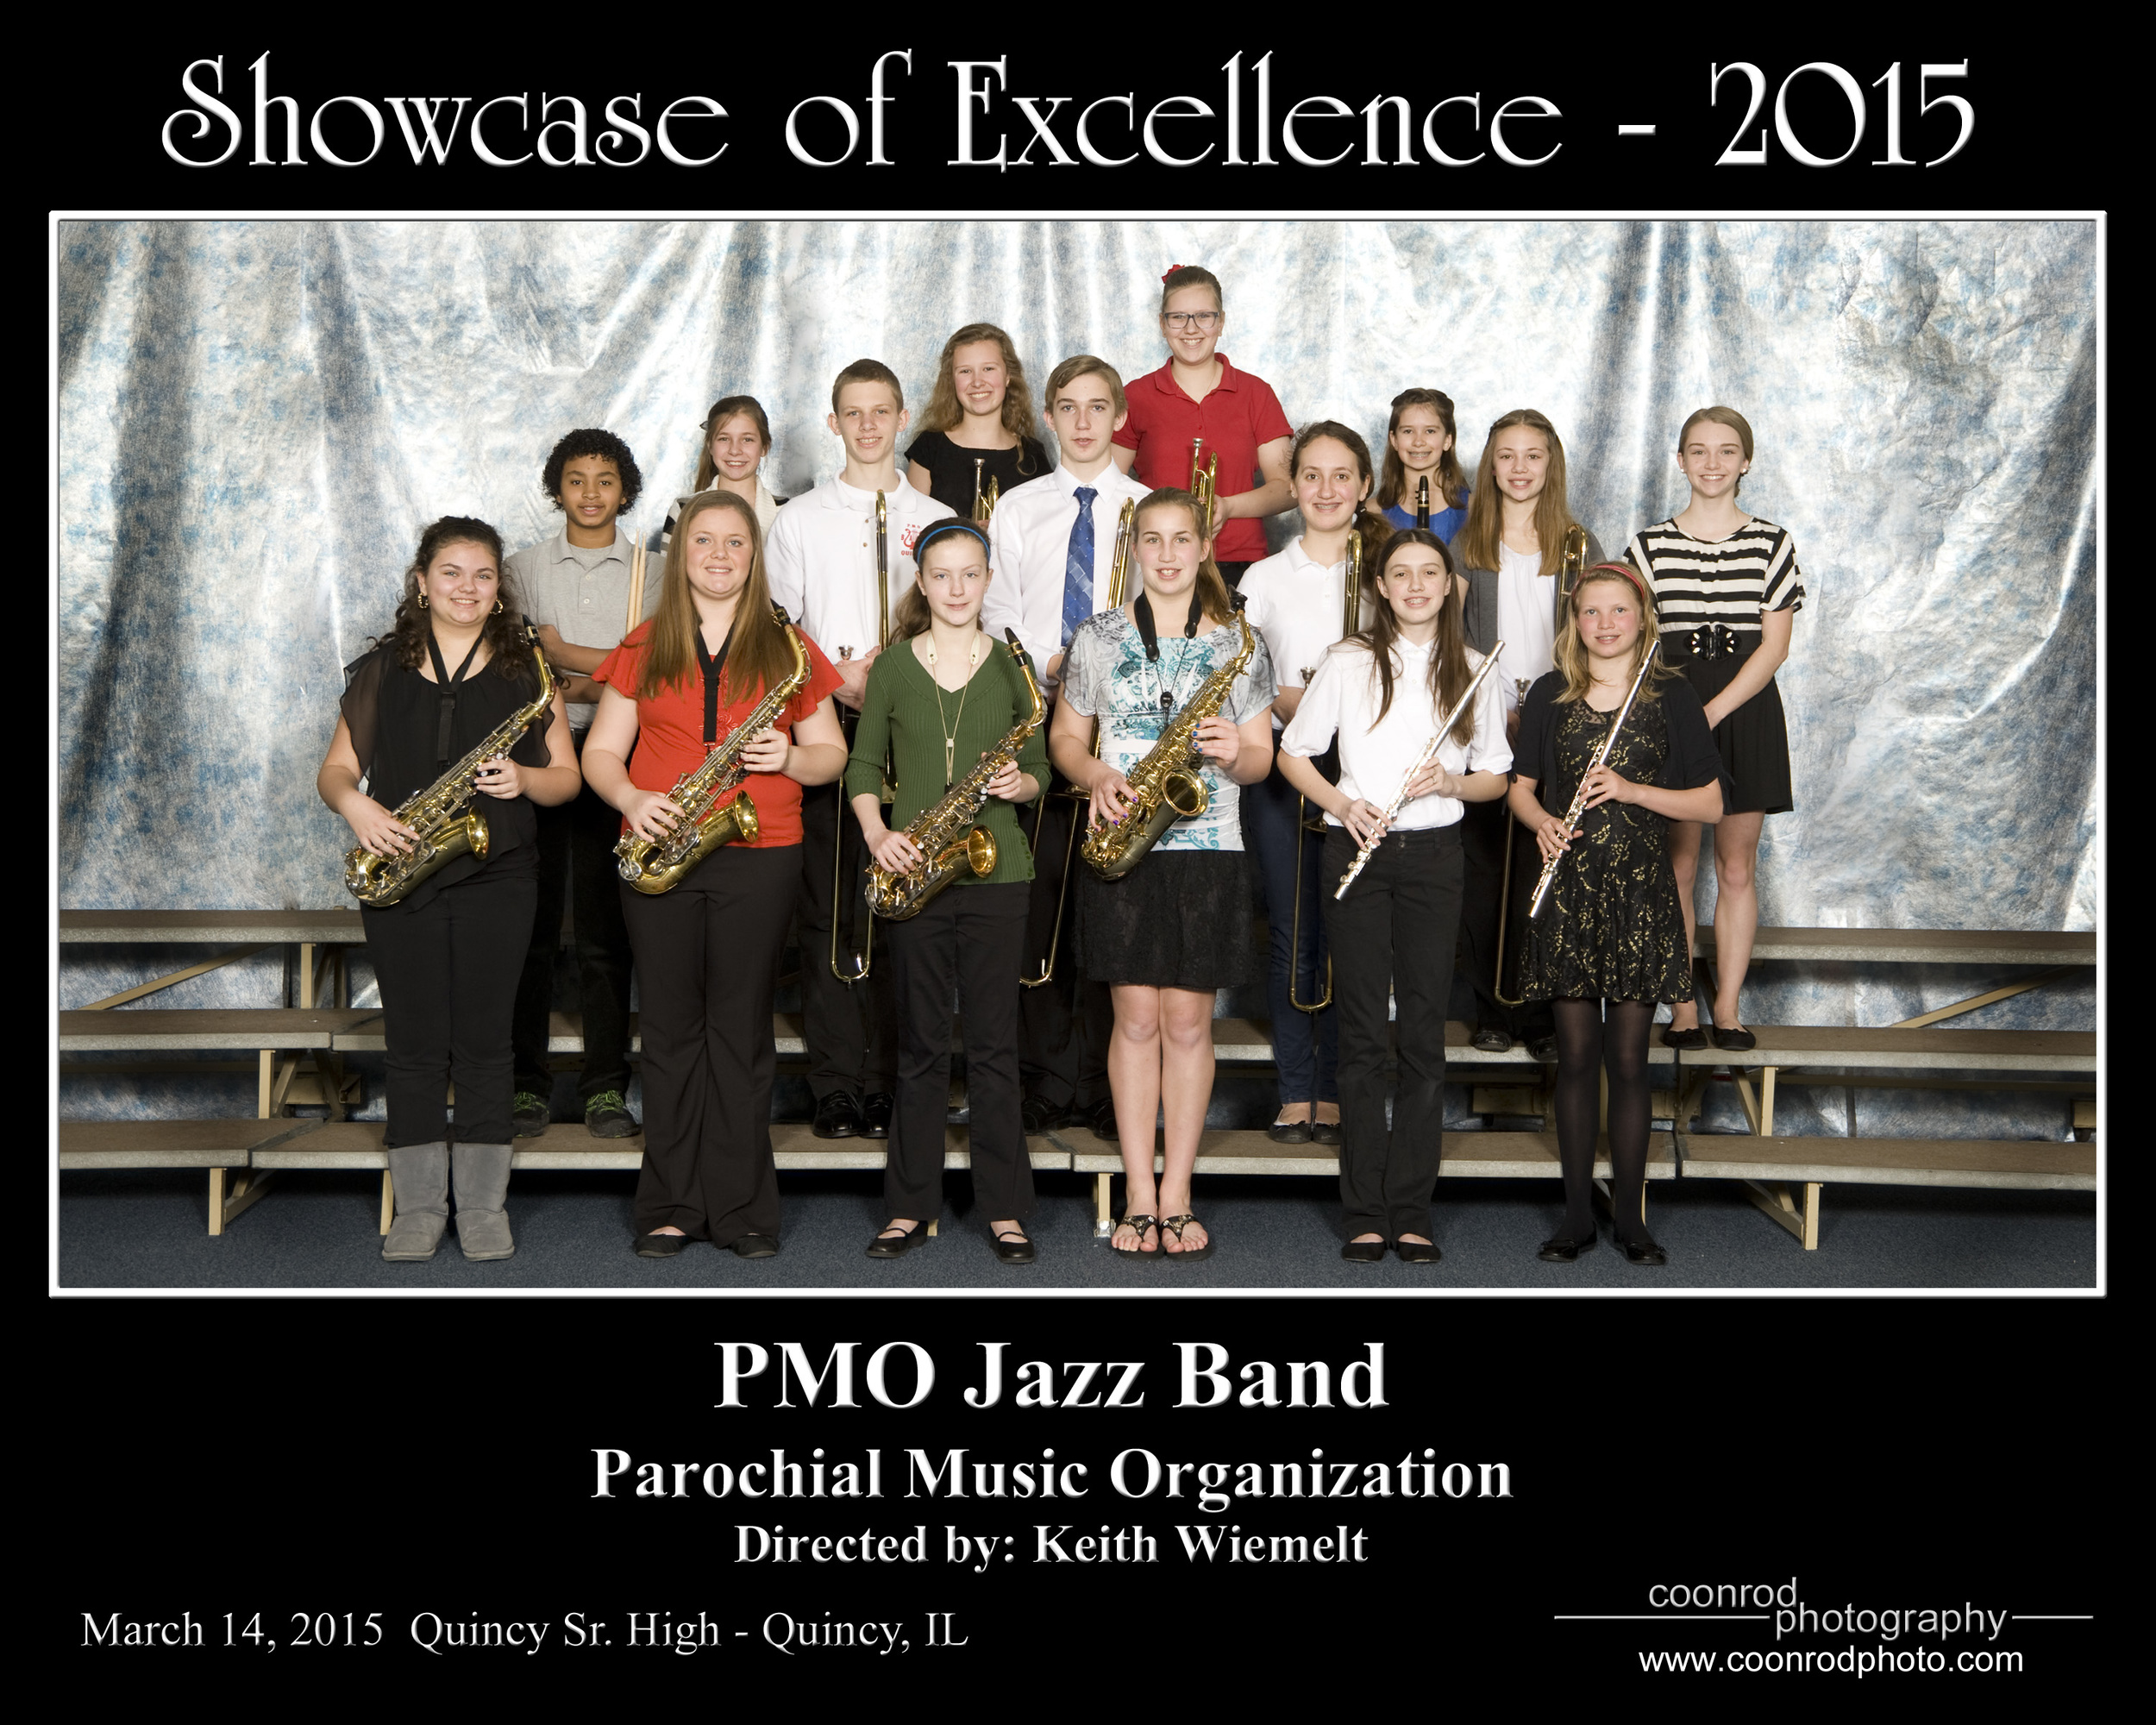 02 PMO Jazz Band.jpg